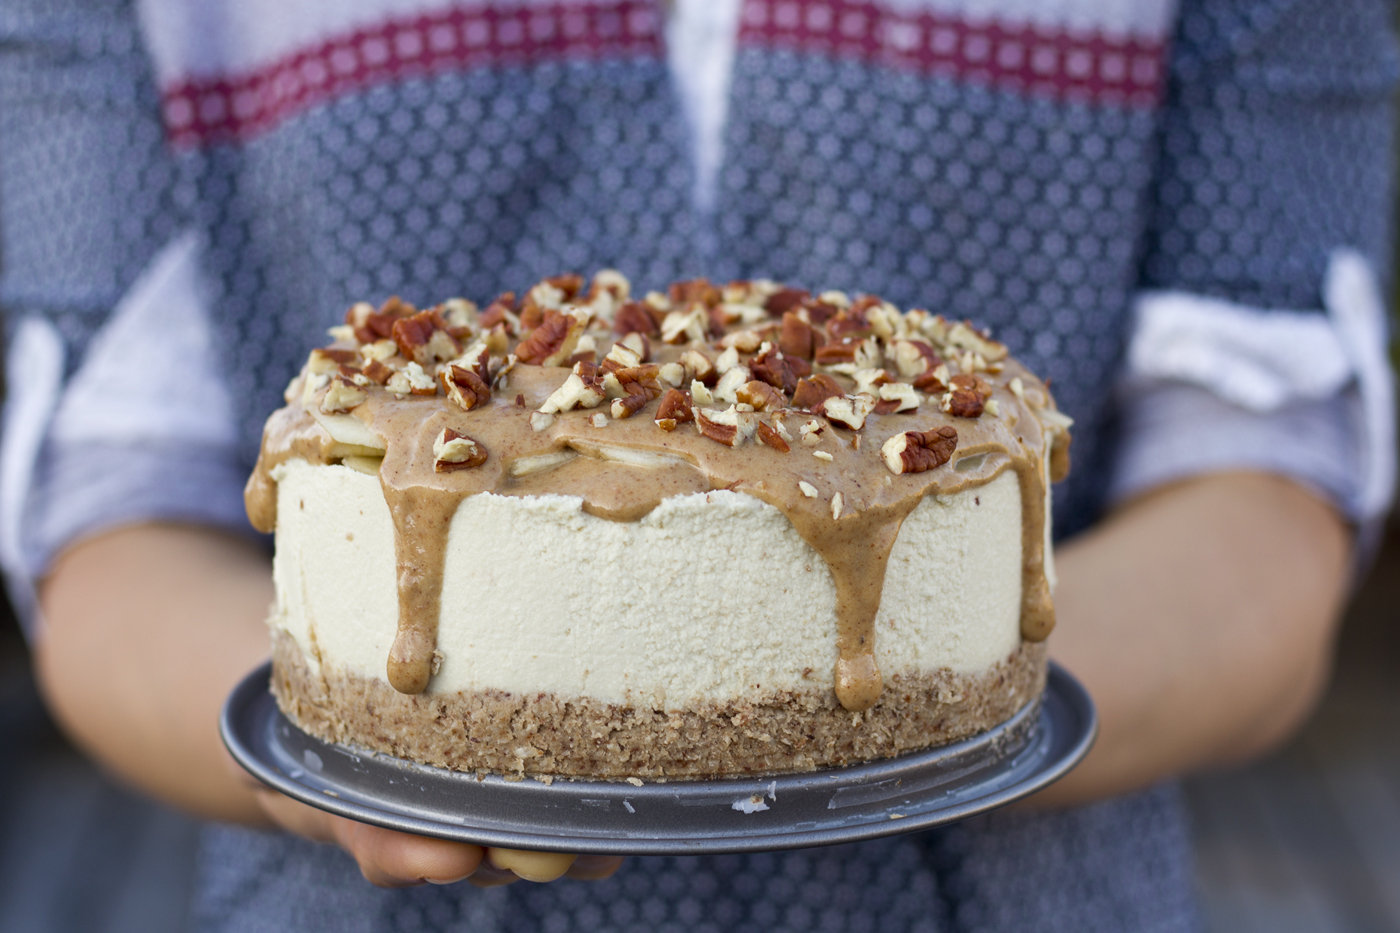 This is a salted caramel apple cheesecake recipe made by Active Vegetarian